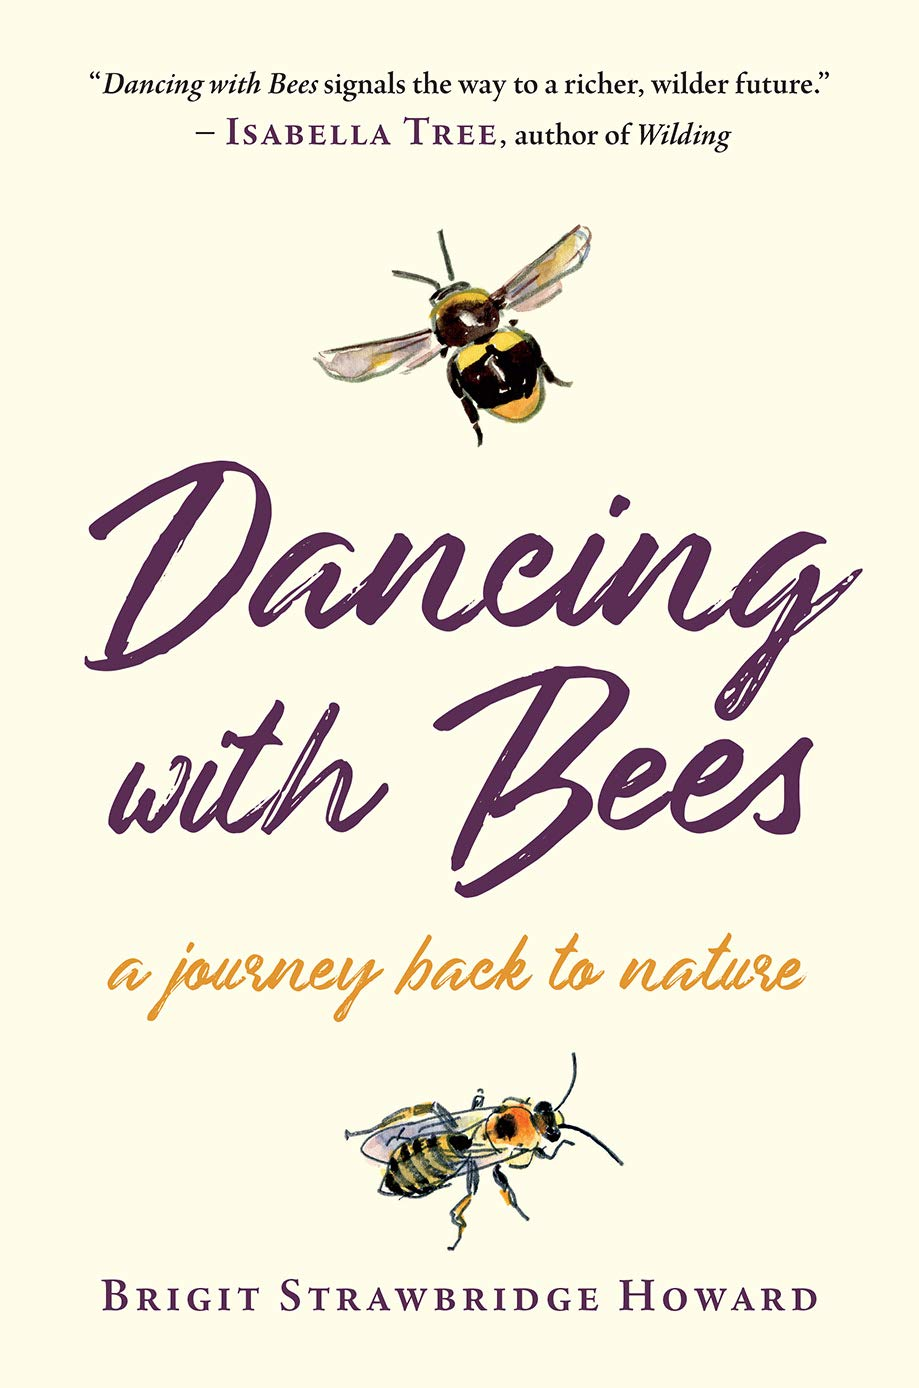 Dancing with Bees: A Journey Back to Nature